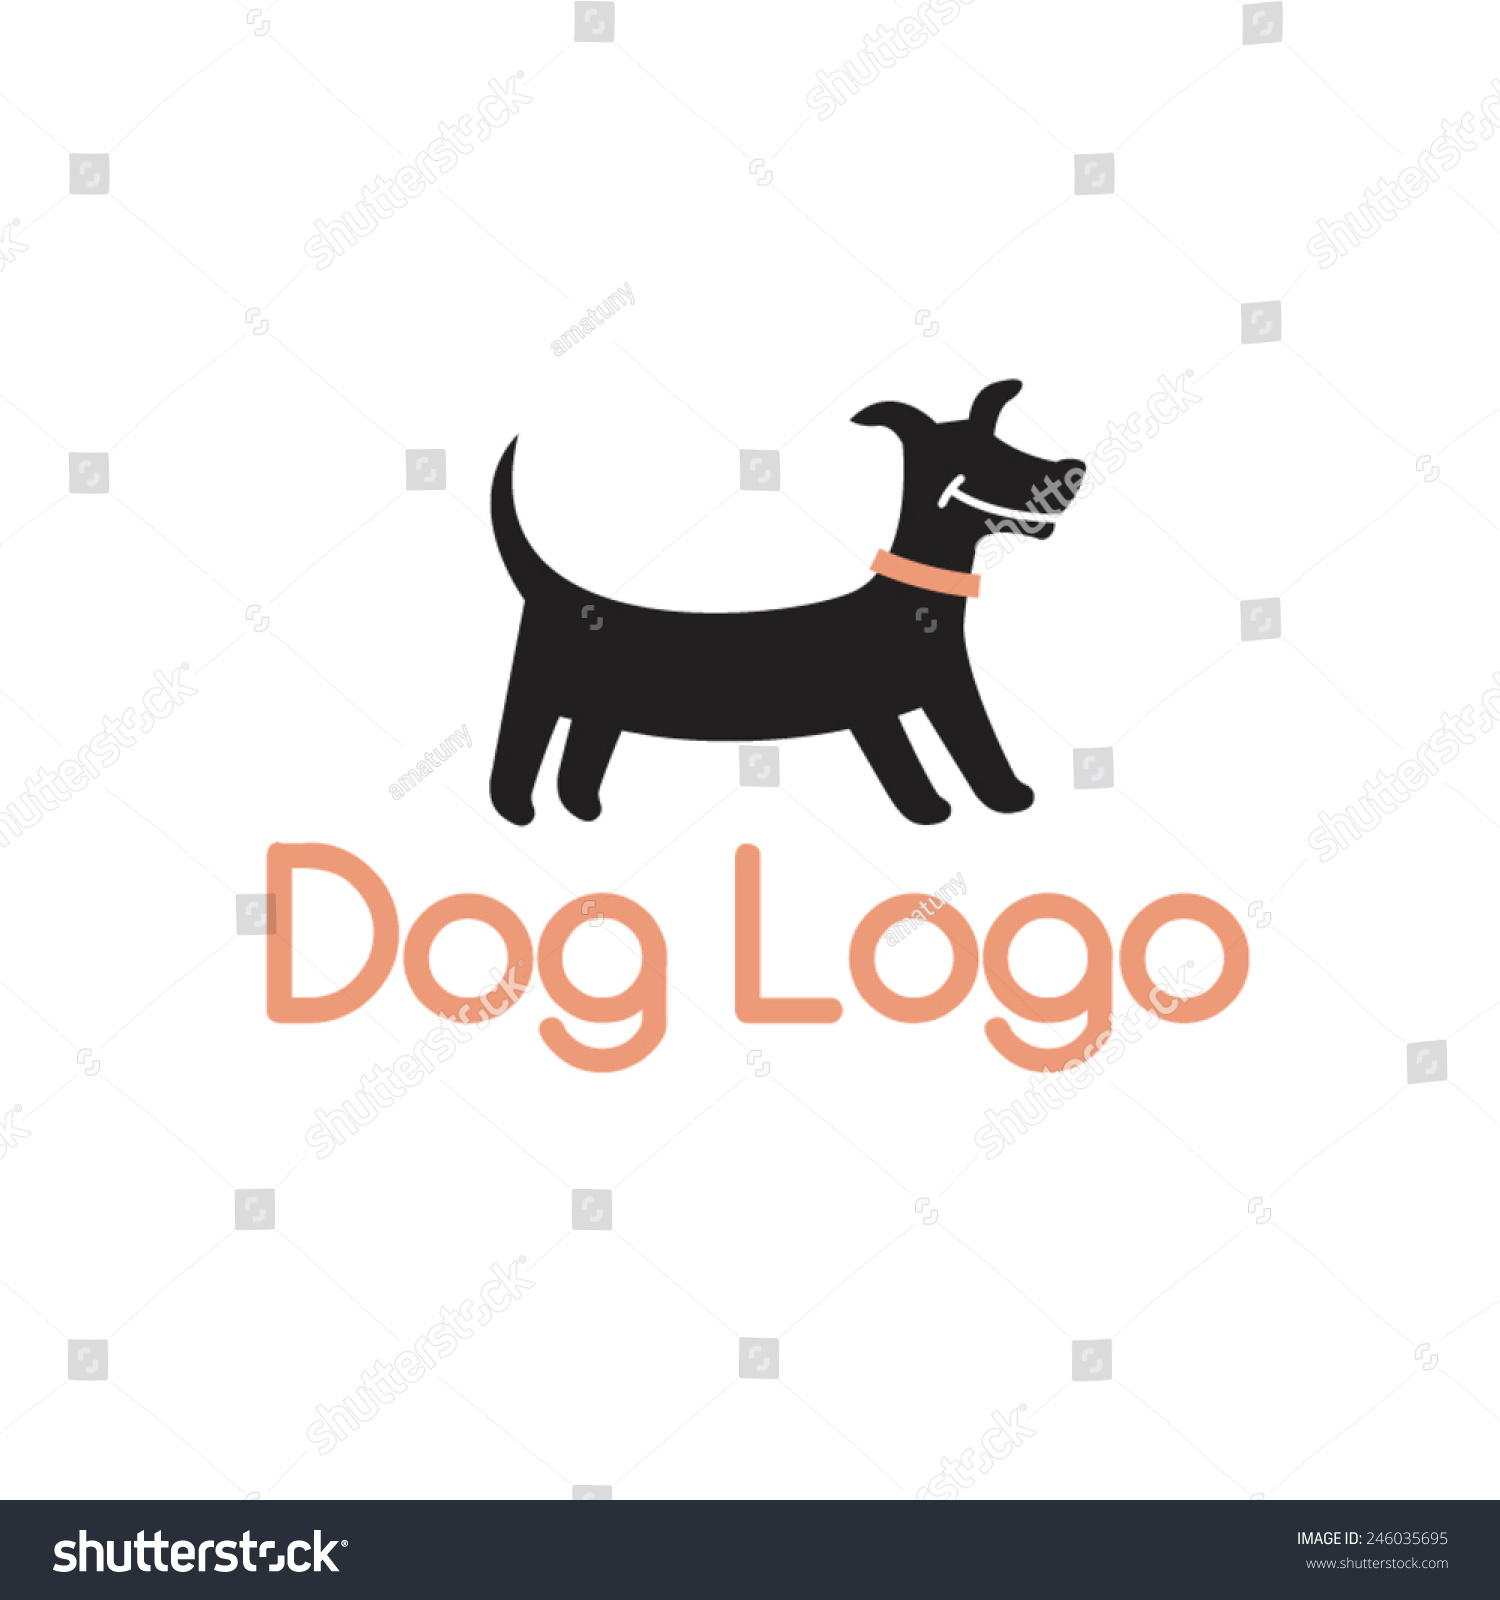 Smiling Dachshund Abstract Dog Logo Design Stock Vector ...